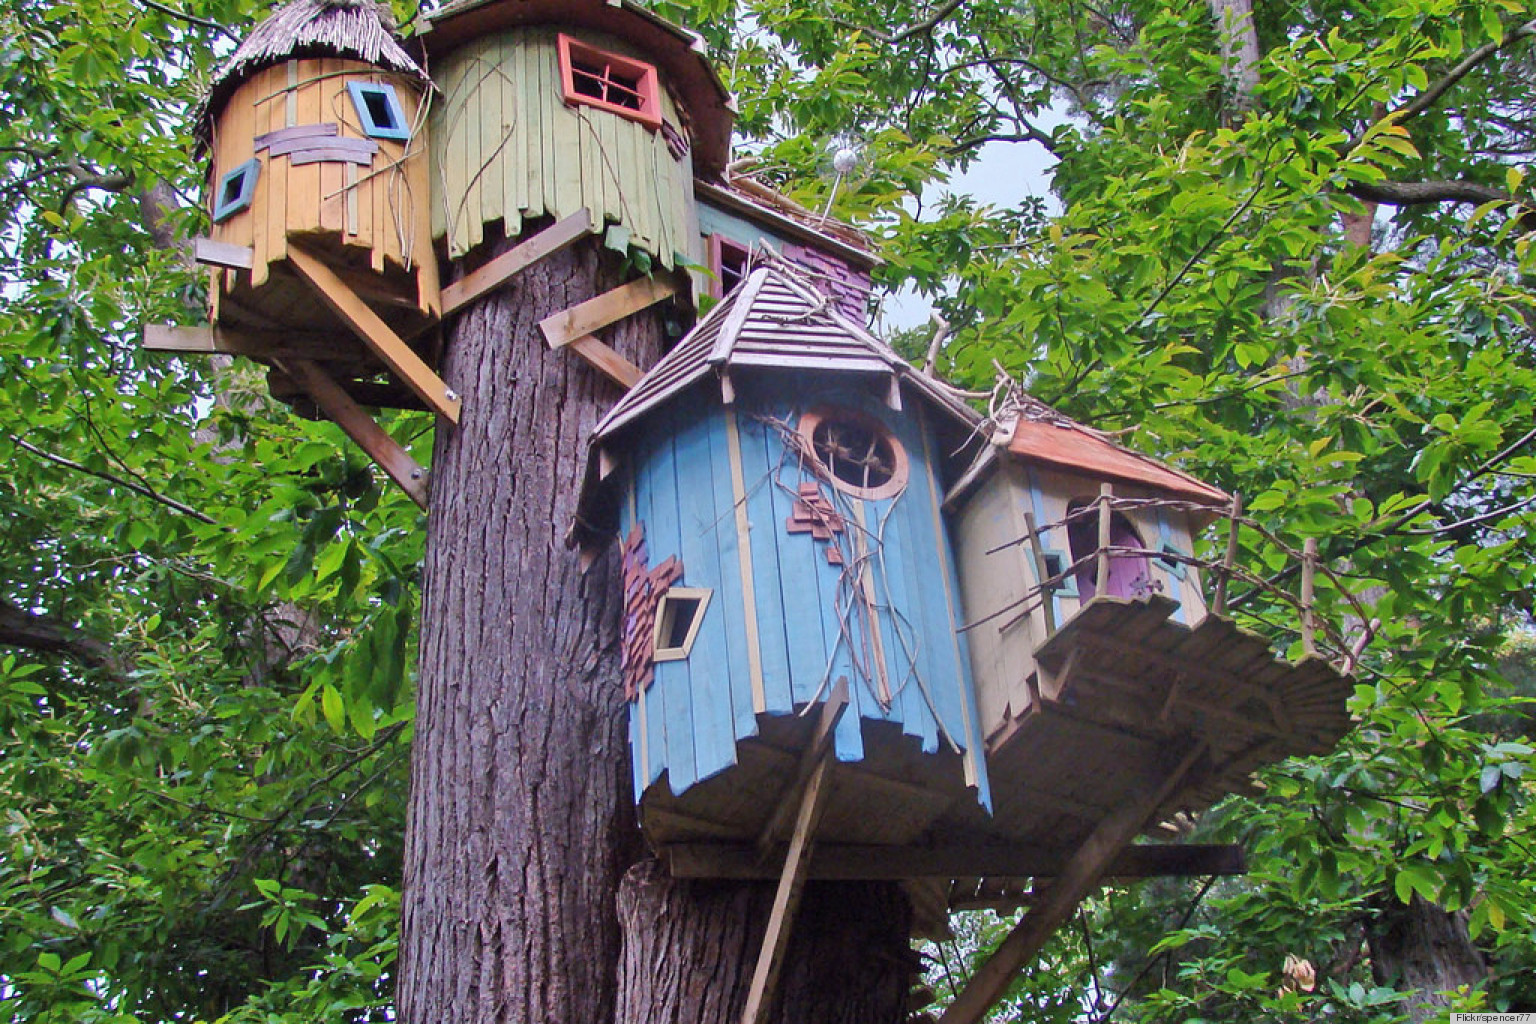 Cool Treehouse Designs We Wish We Had In Our Backyard (PHOTOS) | HuffPost